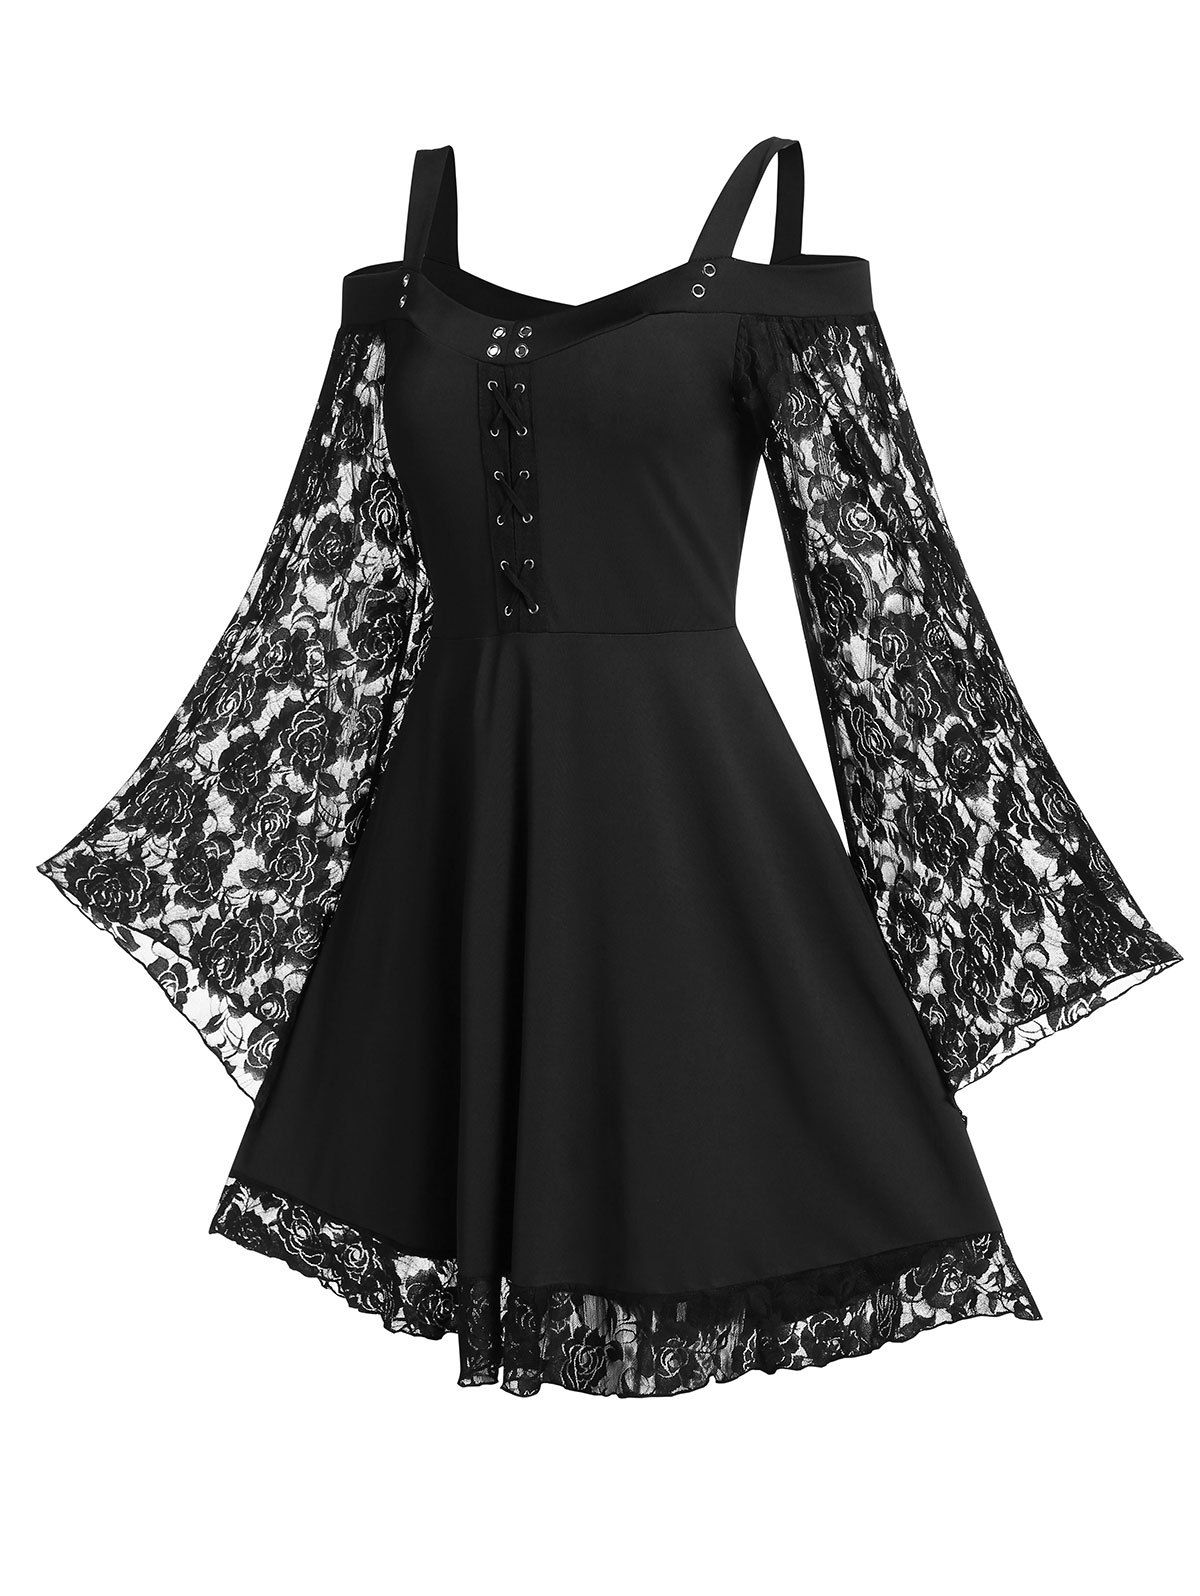 Dresslily Com Photo Gallery Cold Shoulder Sweetheart Neck Lace Insert Dress In 2020 Mini Dress With Sleeves Lace Dress With Sleeves Clothes